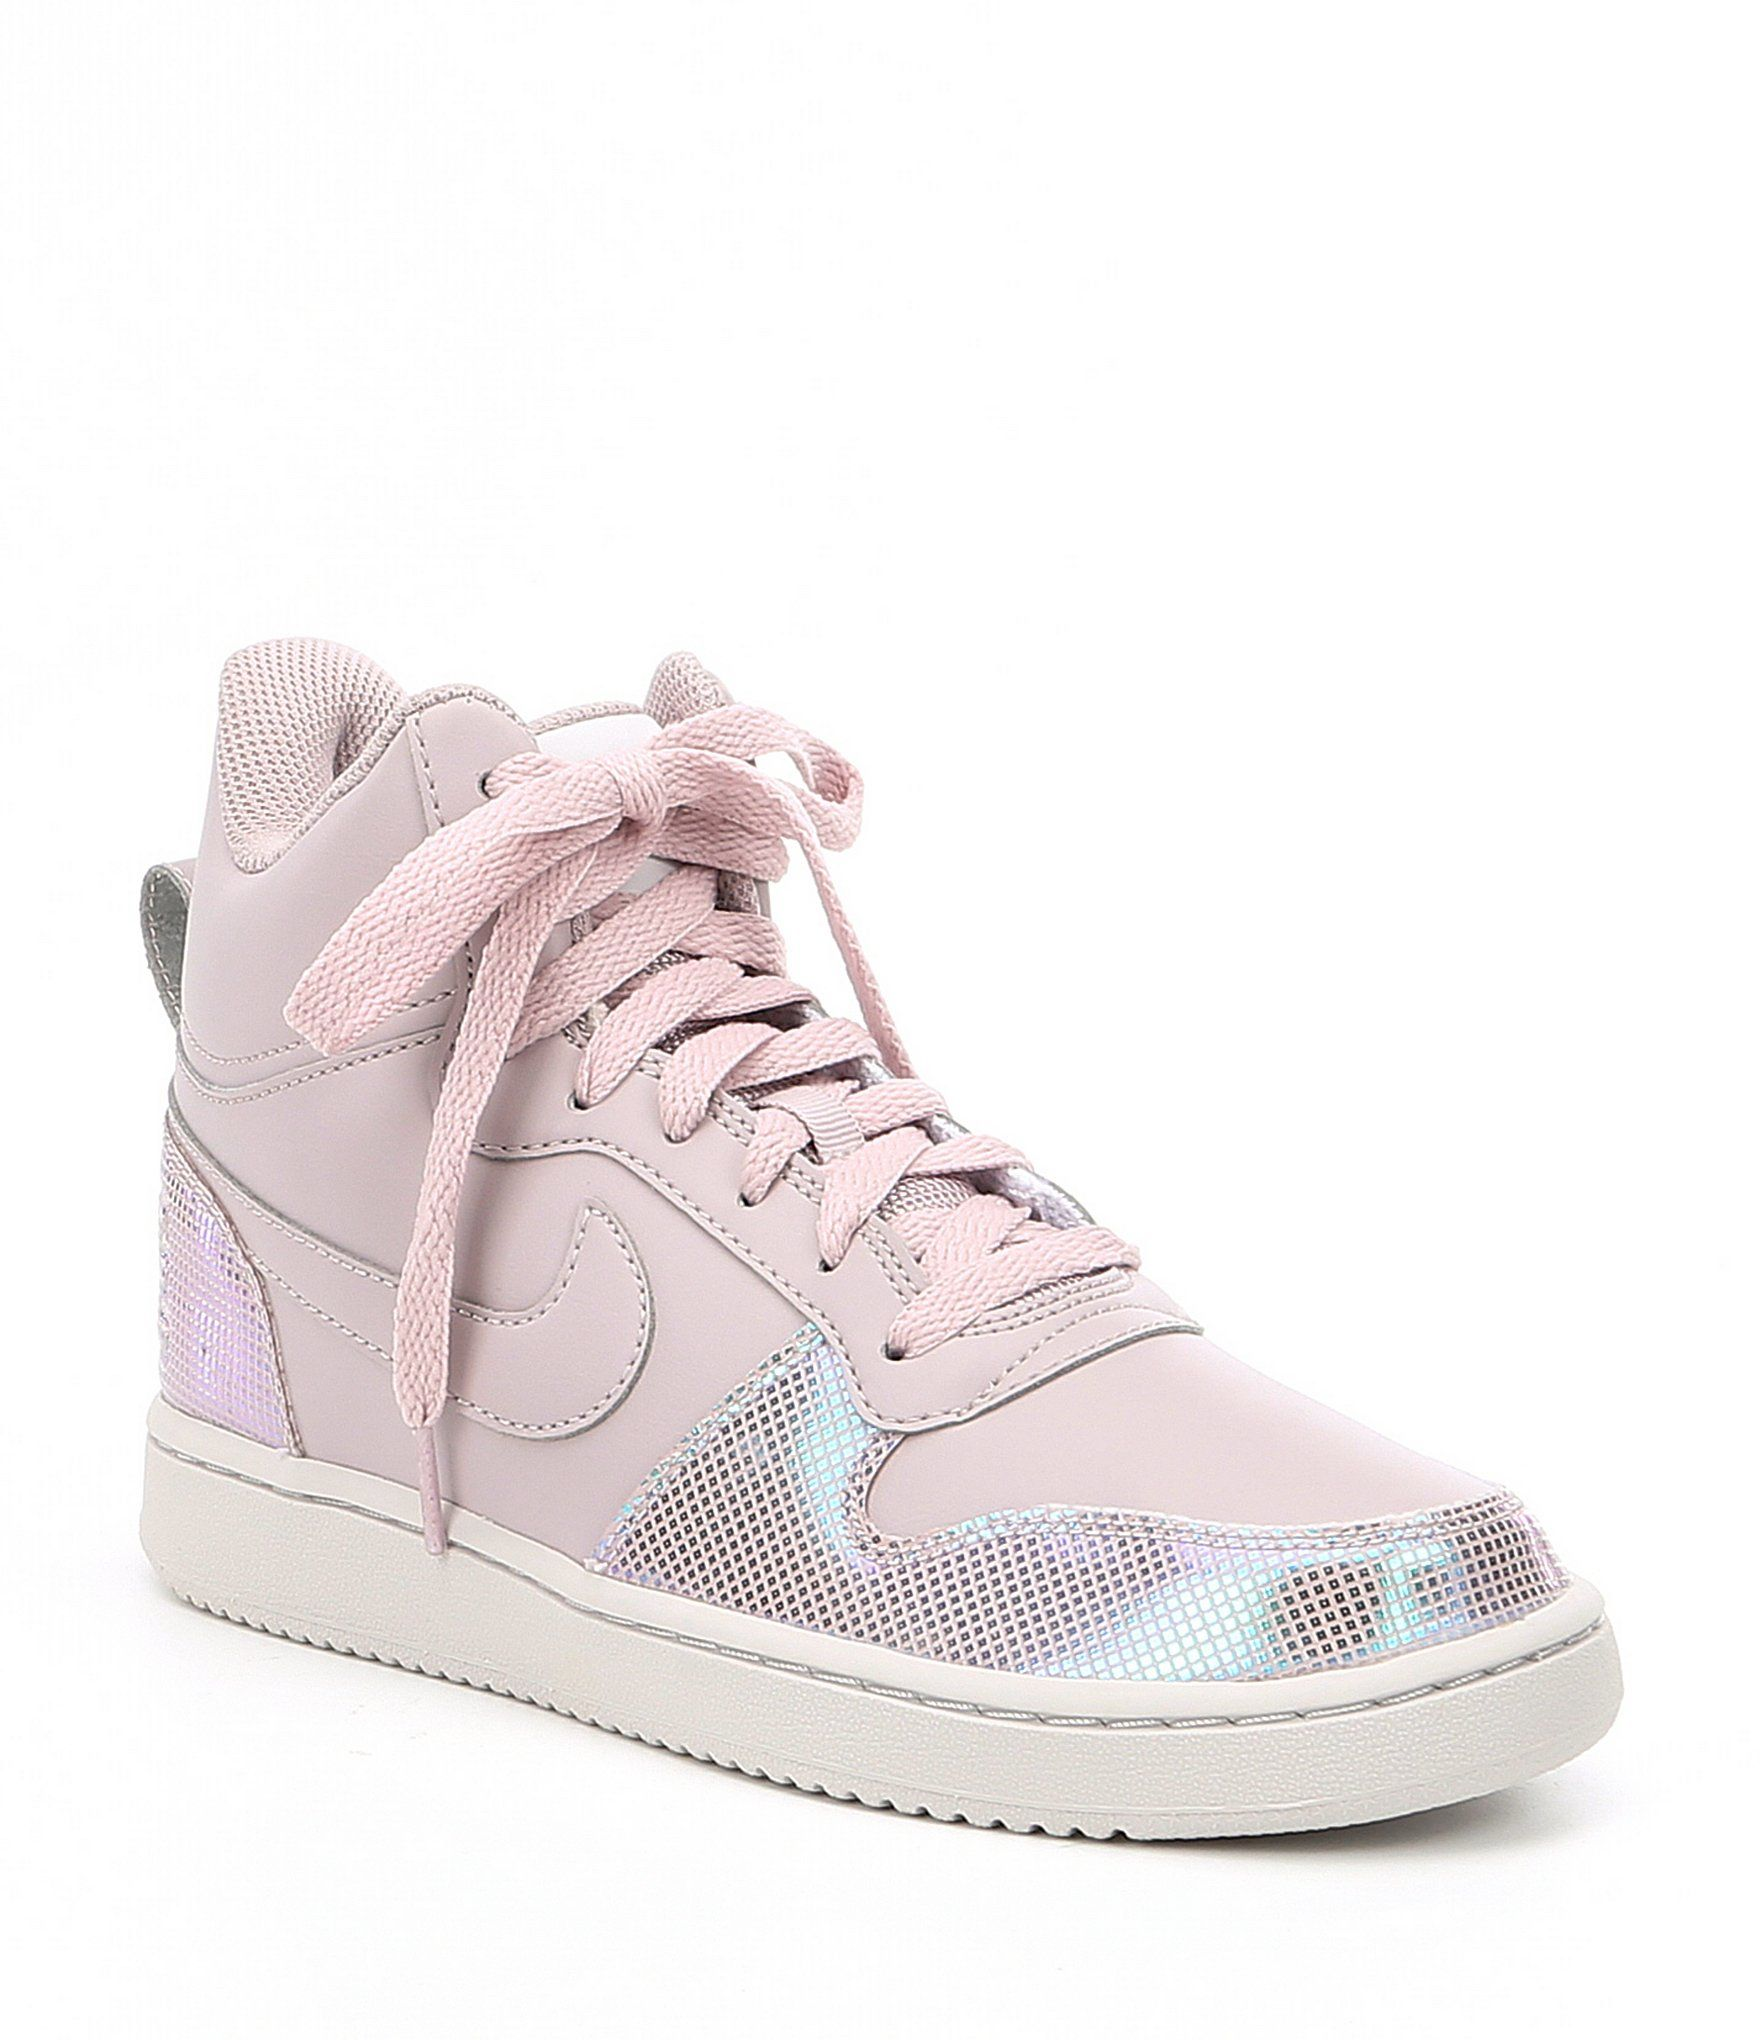 d80d8bc42037 Shop for Nike Women s Court Borough Mid SE Sneakers at Dillards.com. Visit  Dillards.com to find clothing